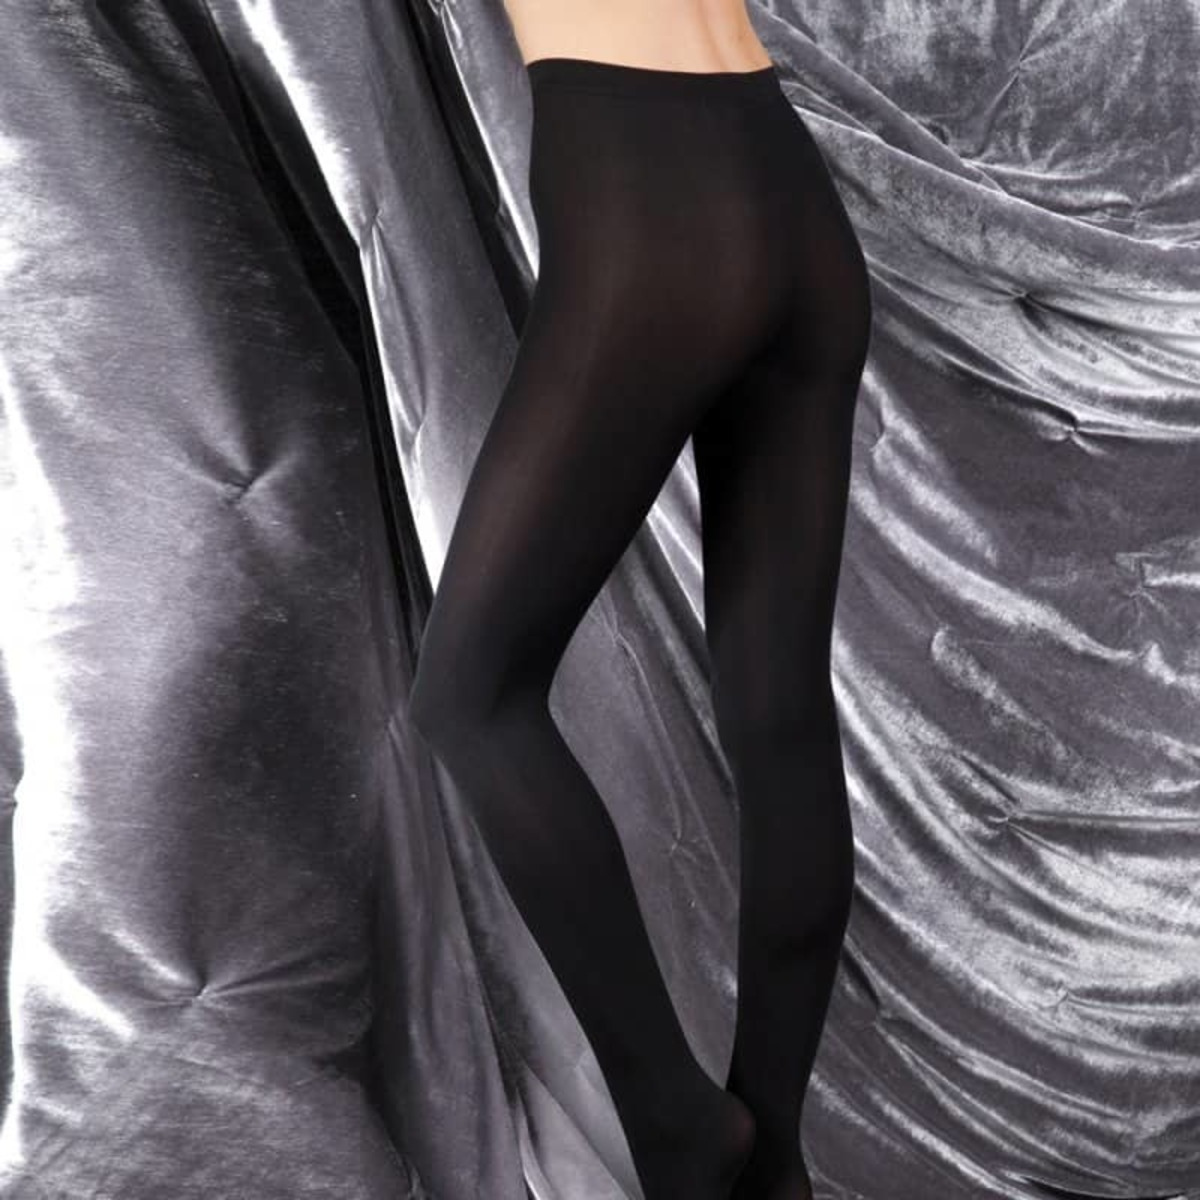 punčocháče LEGWEAR - couture ultimates - the sarah - black - CS0010 S